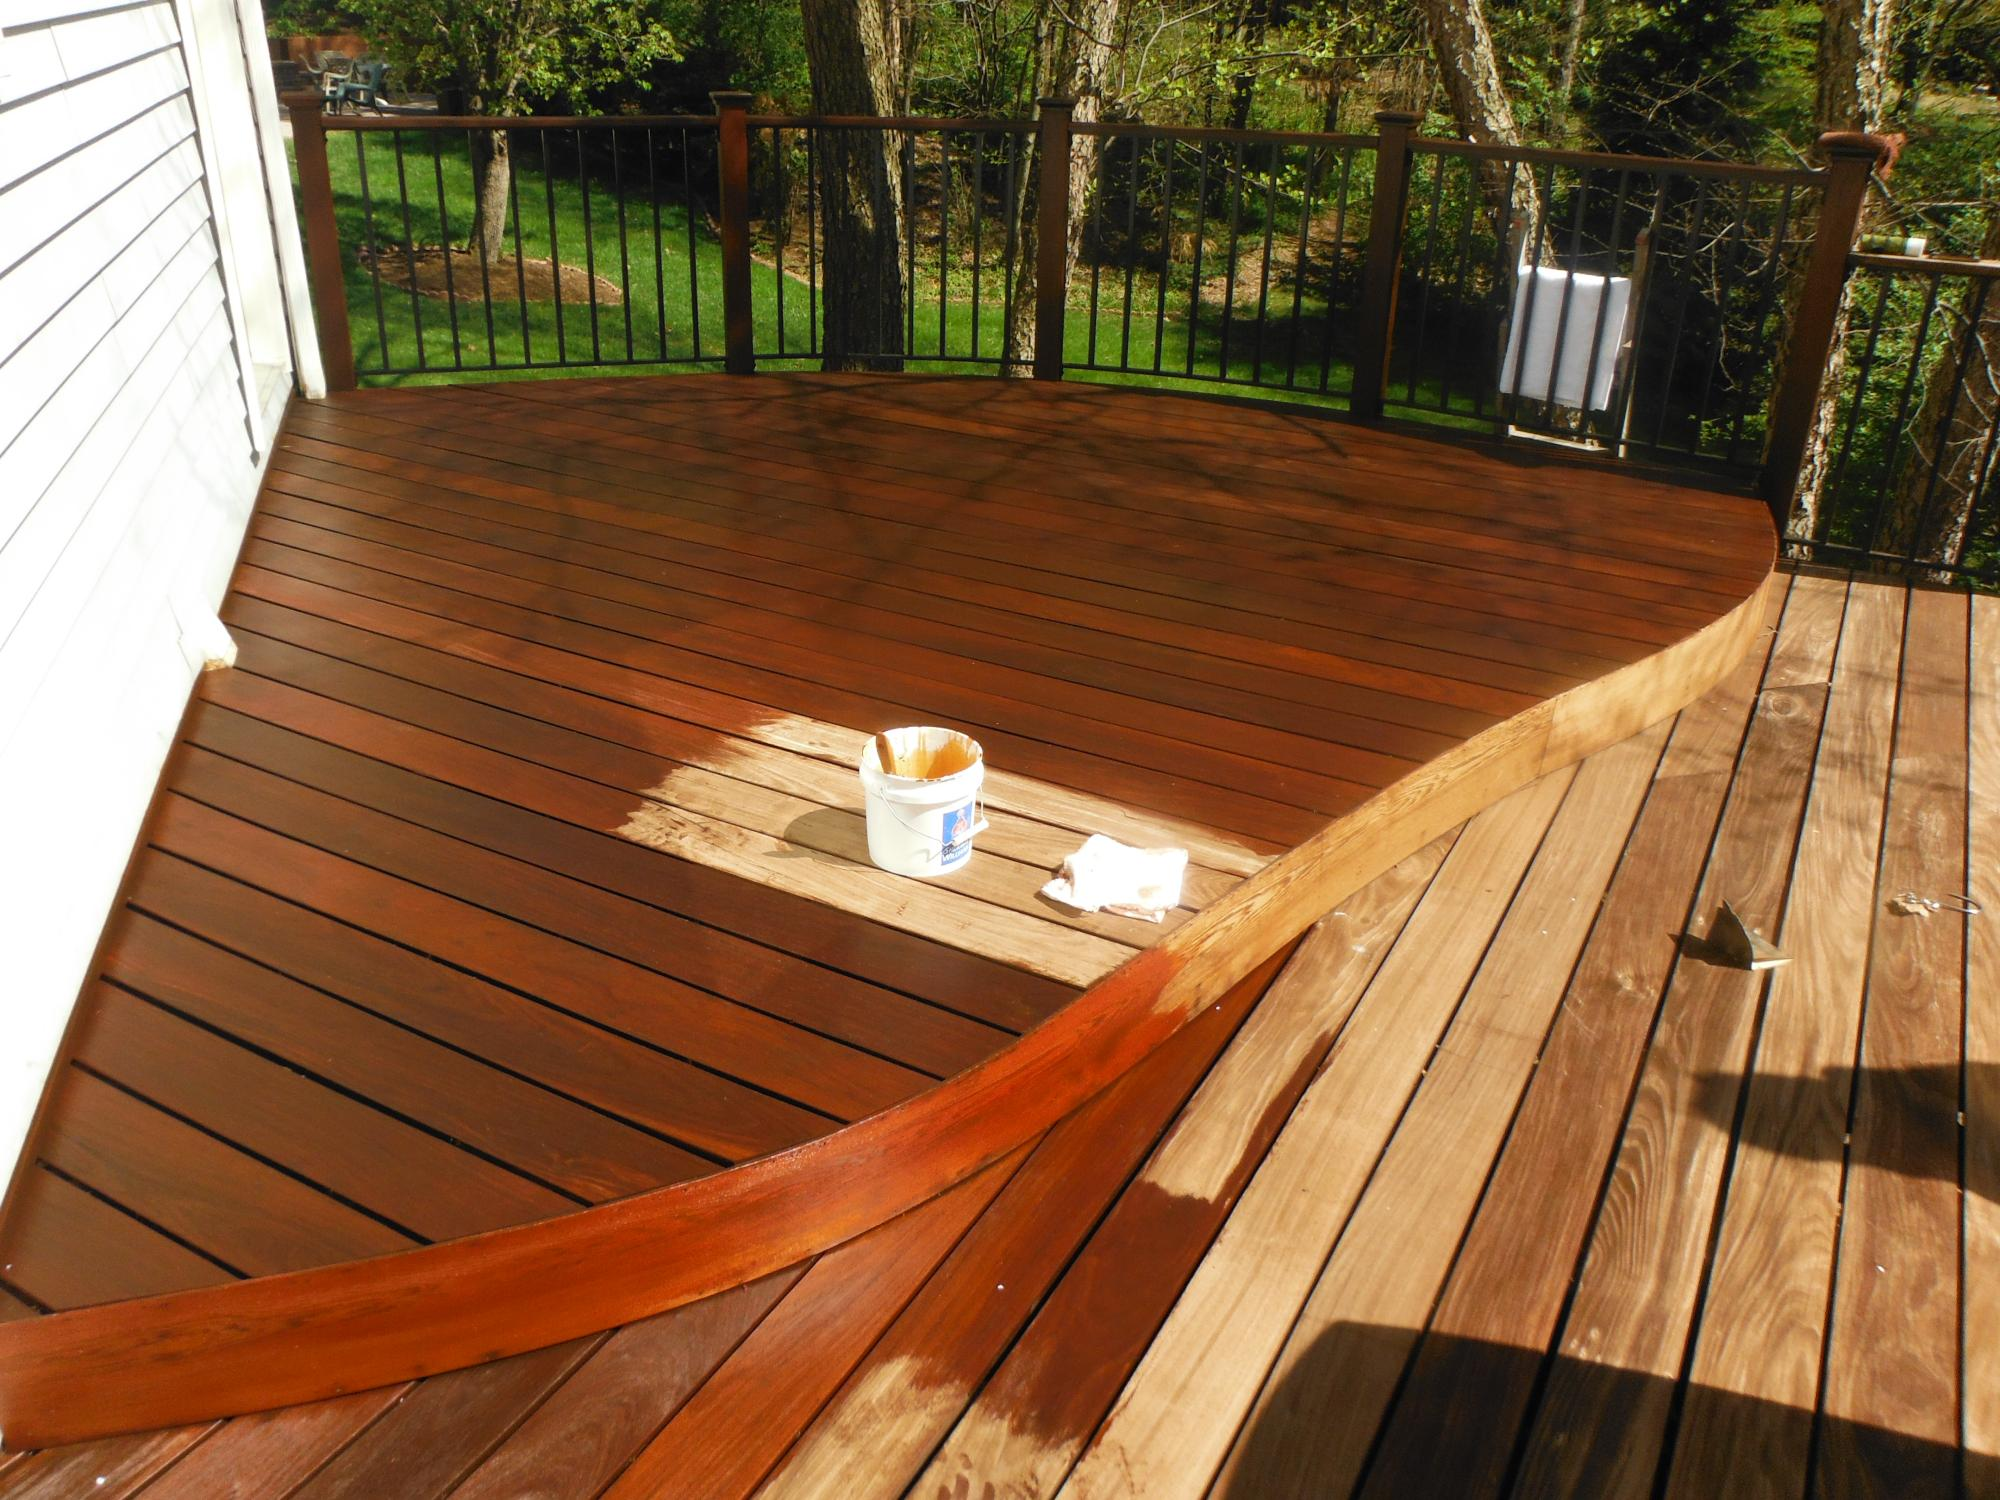 Sealing IPE deck with brush